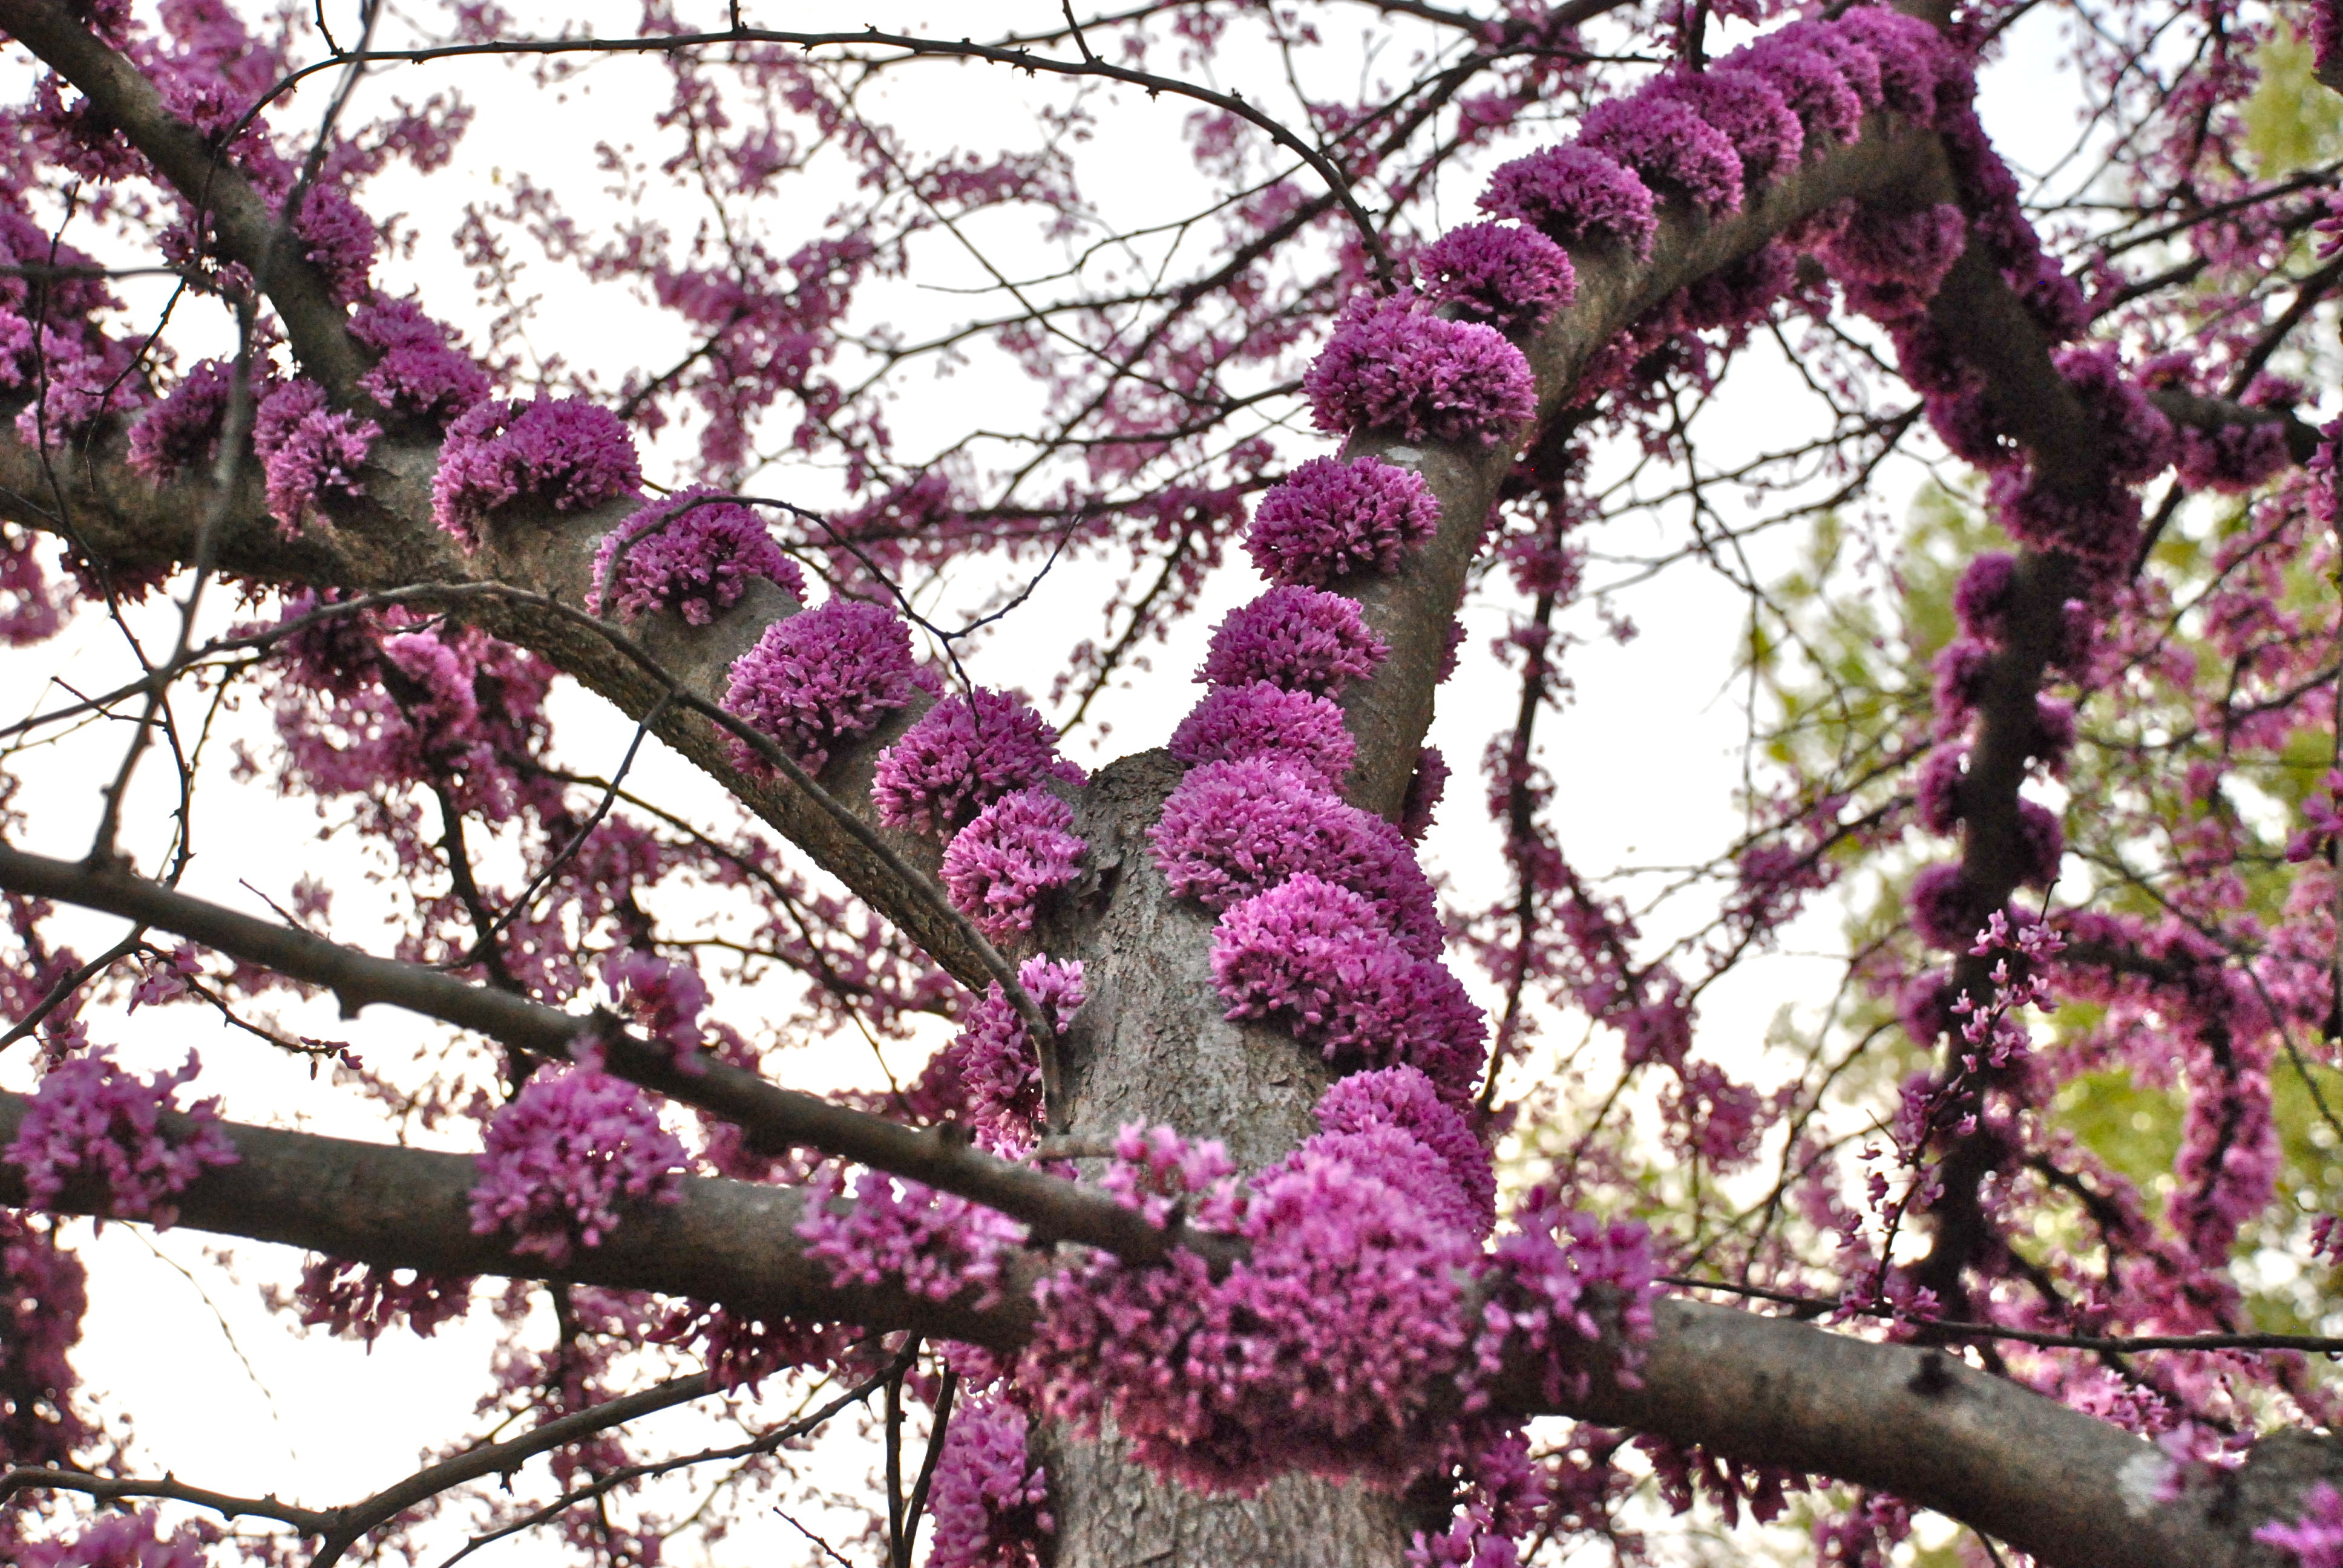 Redbud trees greensboro daily photo one of the first trees to wake up in the spring in north carolina is cercis canadensis the eastern redbud is a small tree native to north america dhlflorist Gallery